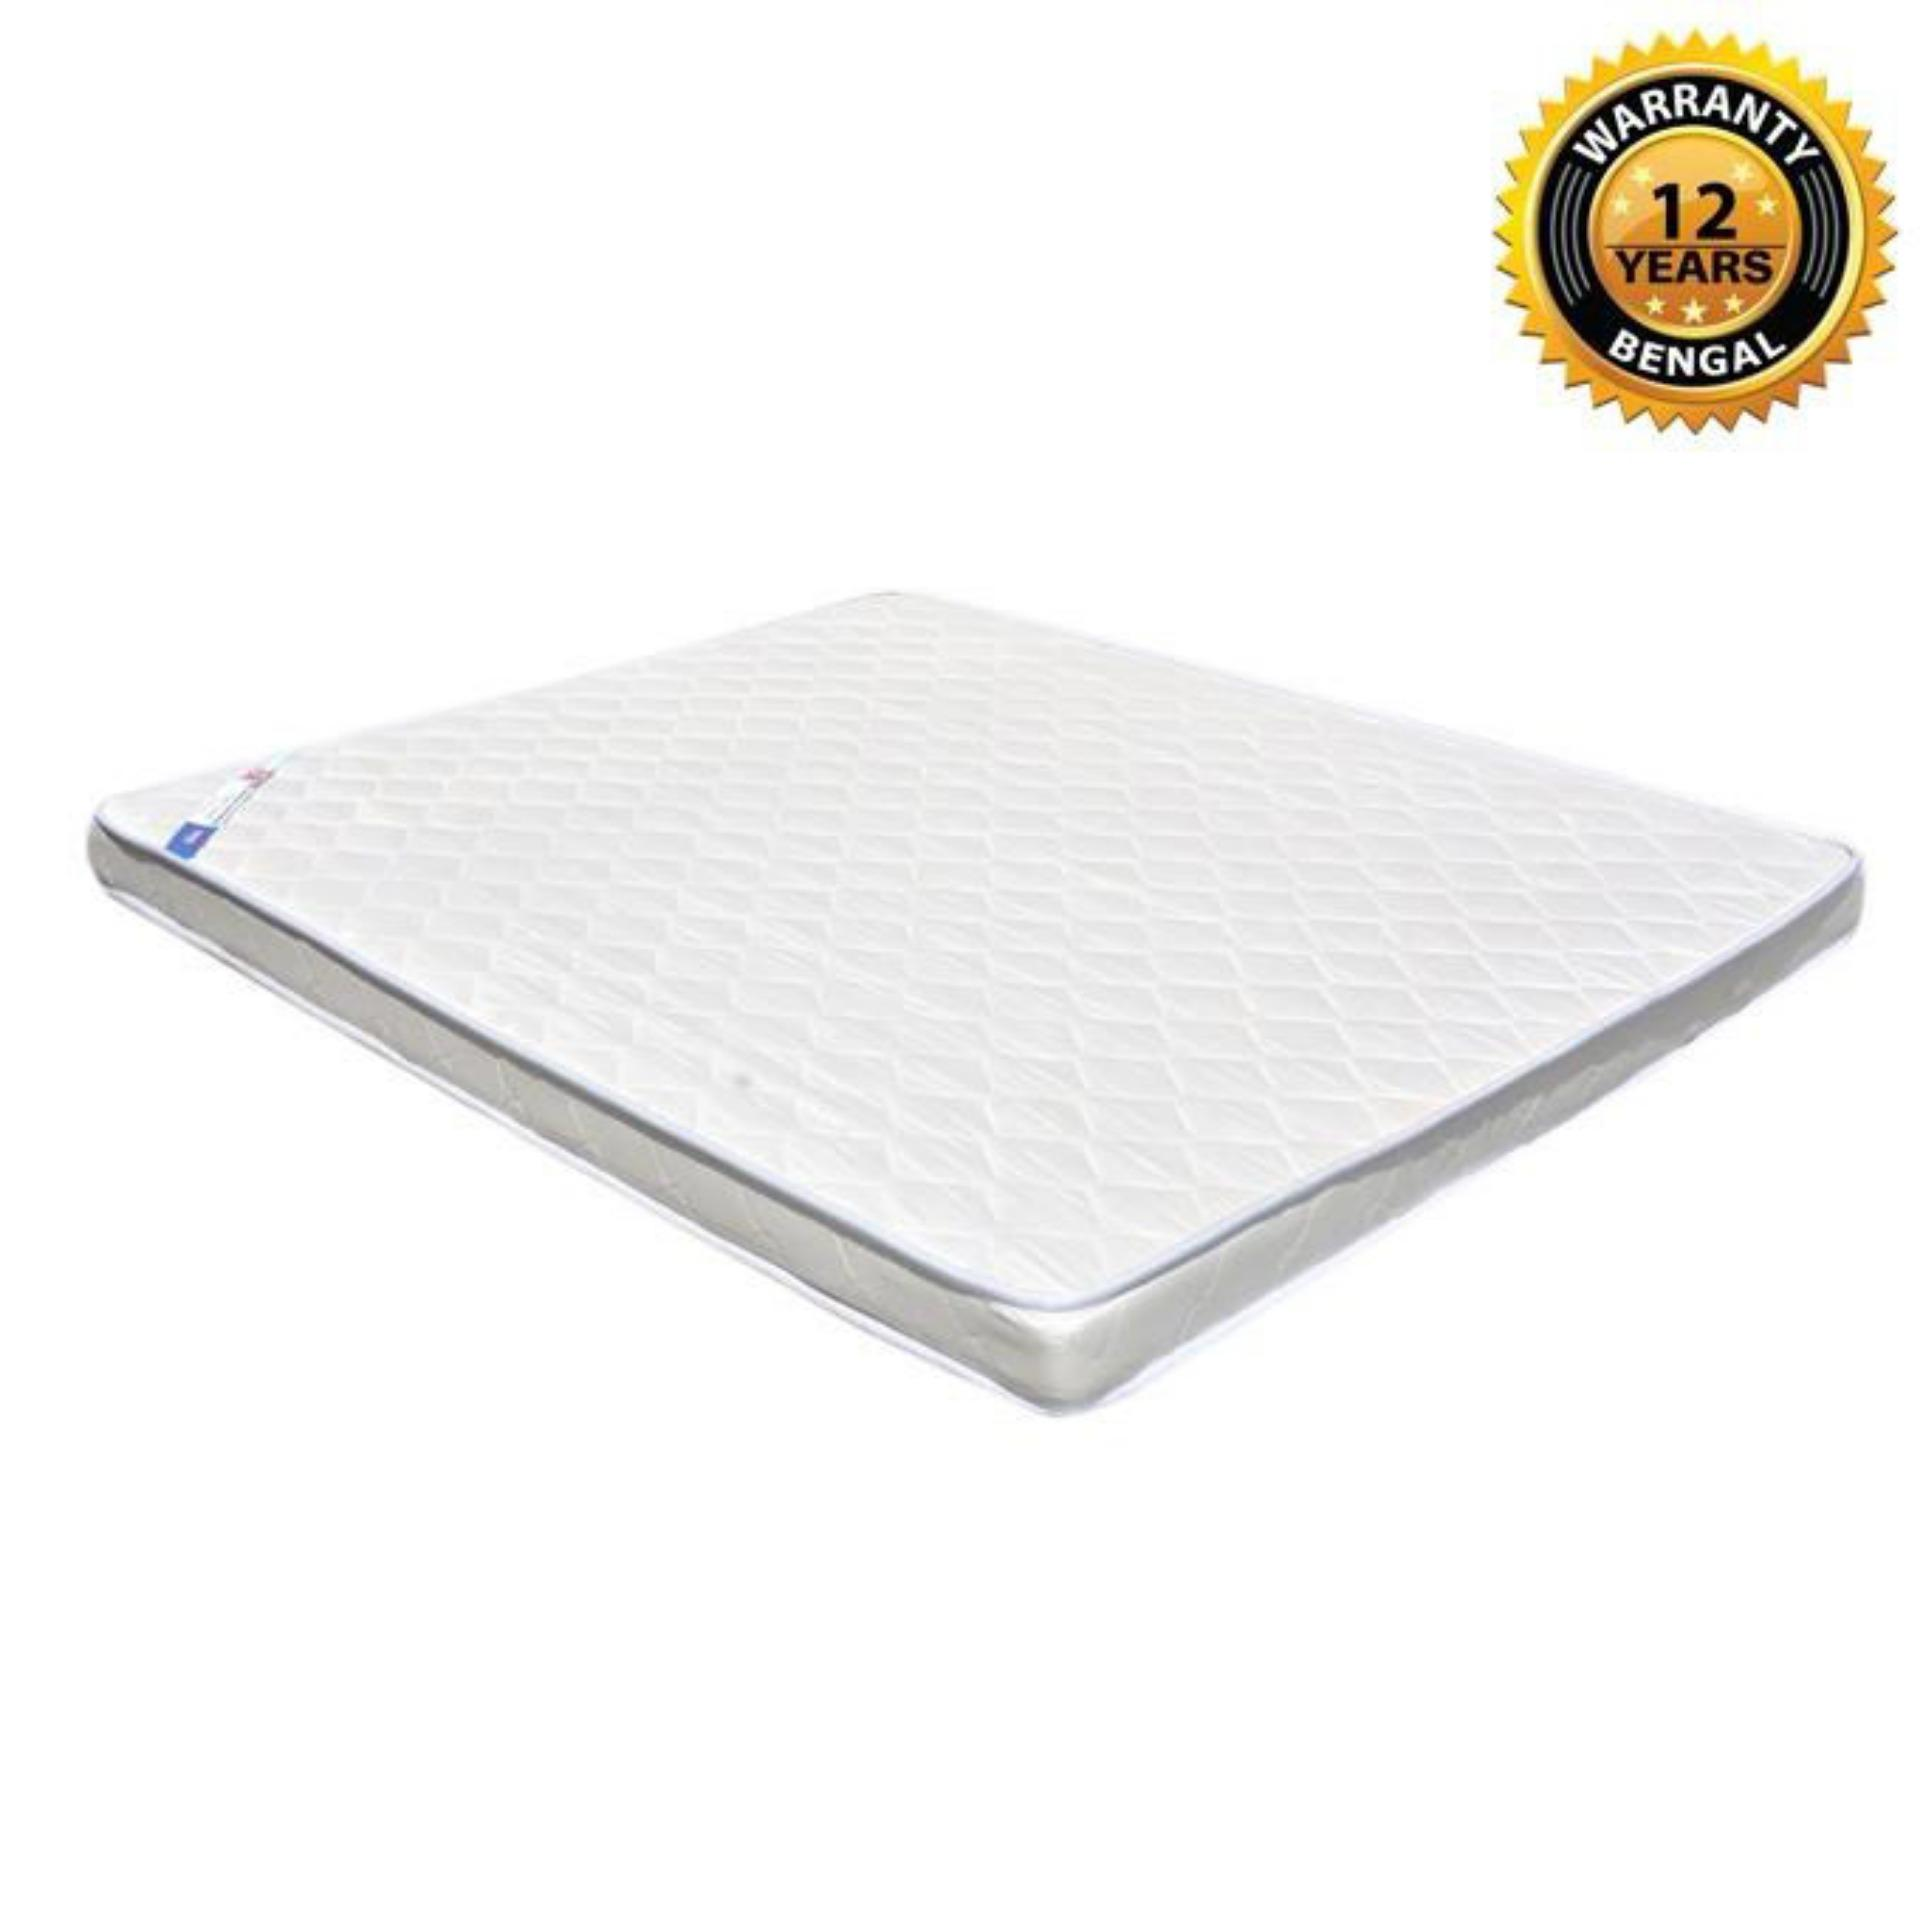 "Bengal Medicated Mattress (81""x66""x4"") - White"